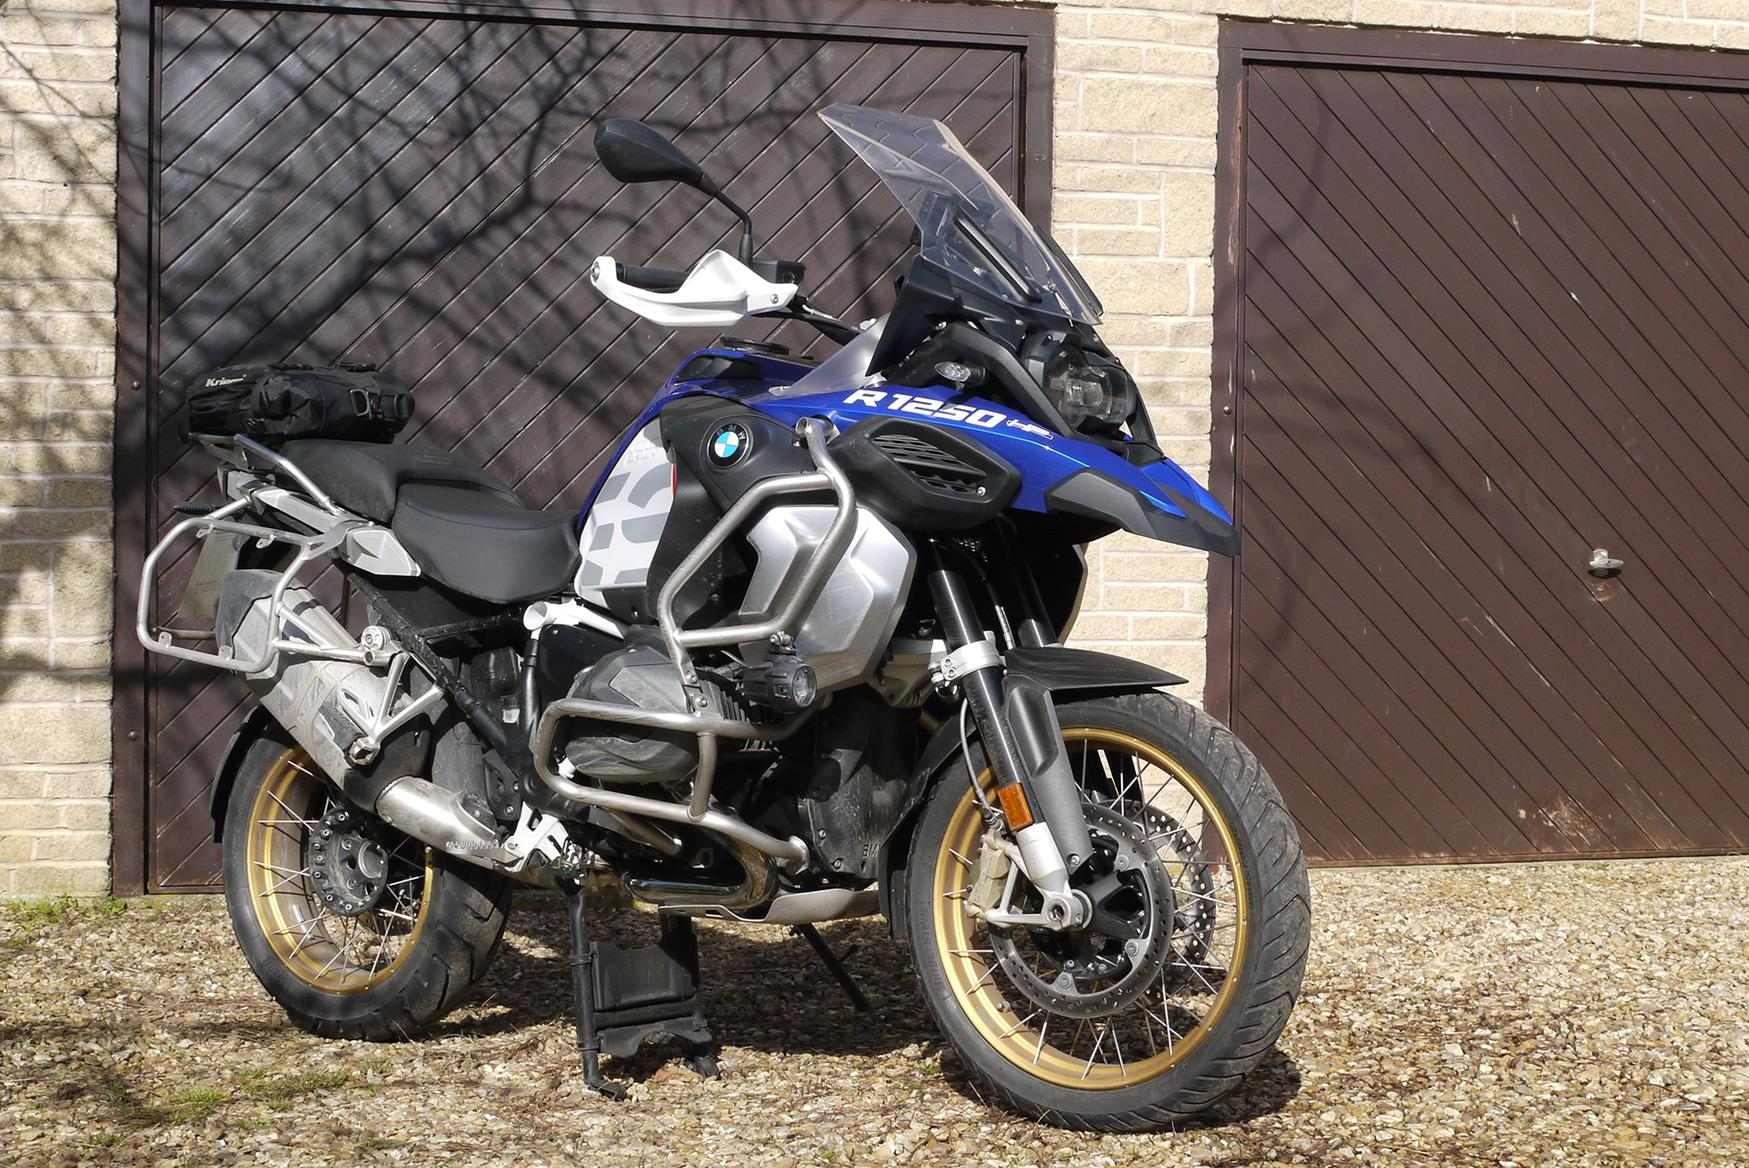 Prepping the BMW R1250GSA for adventure